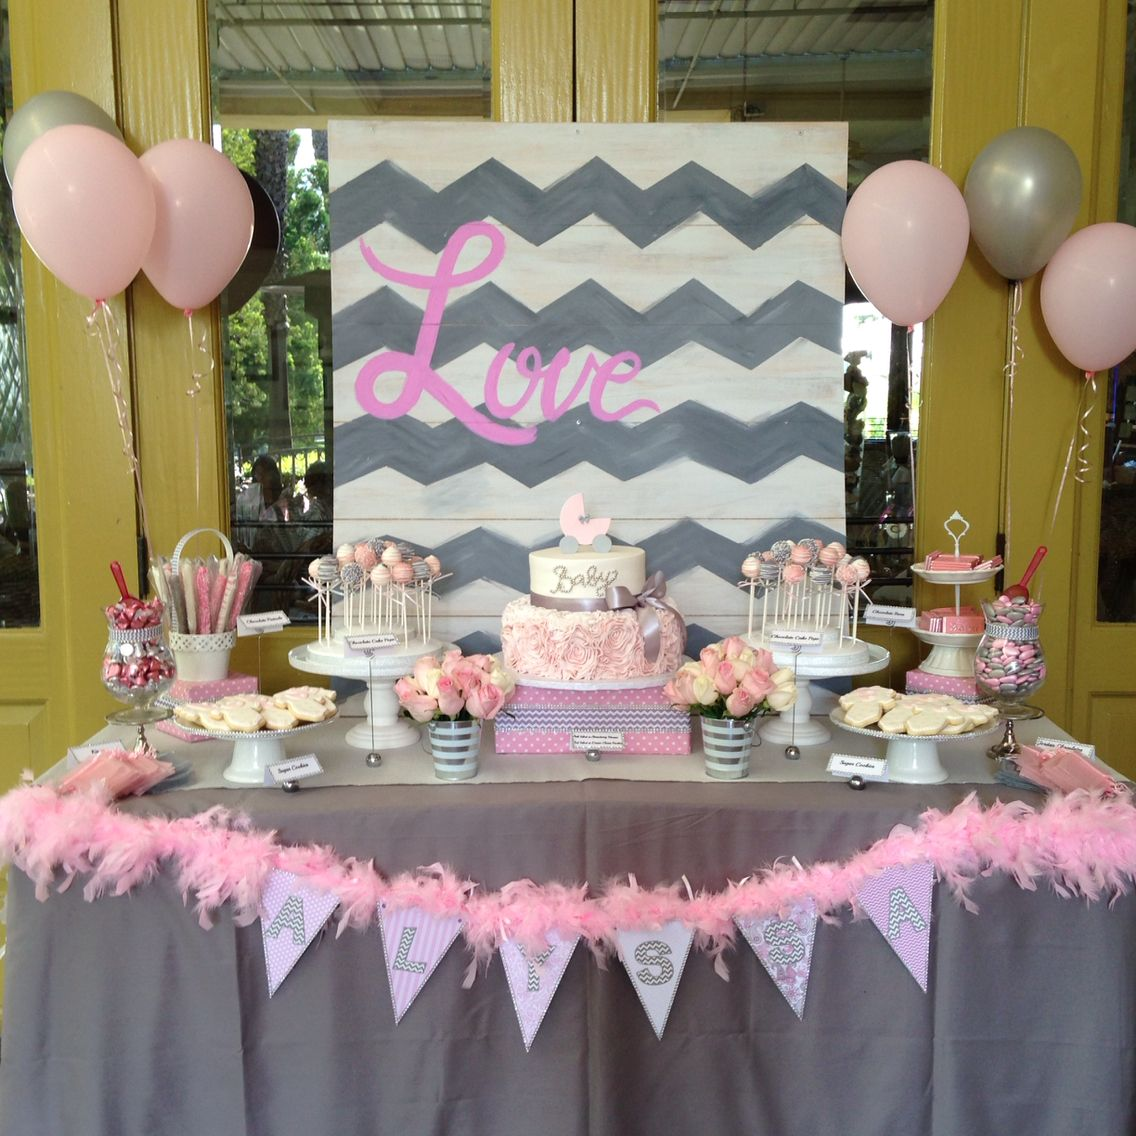 Pink And Gray Elephant Baby Shower Decorations: Chevron, Pink, Grey, Baby Shower, Carriage Rossette Cake